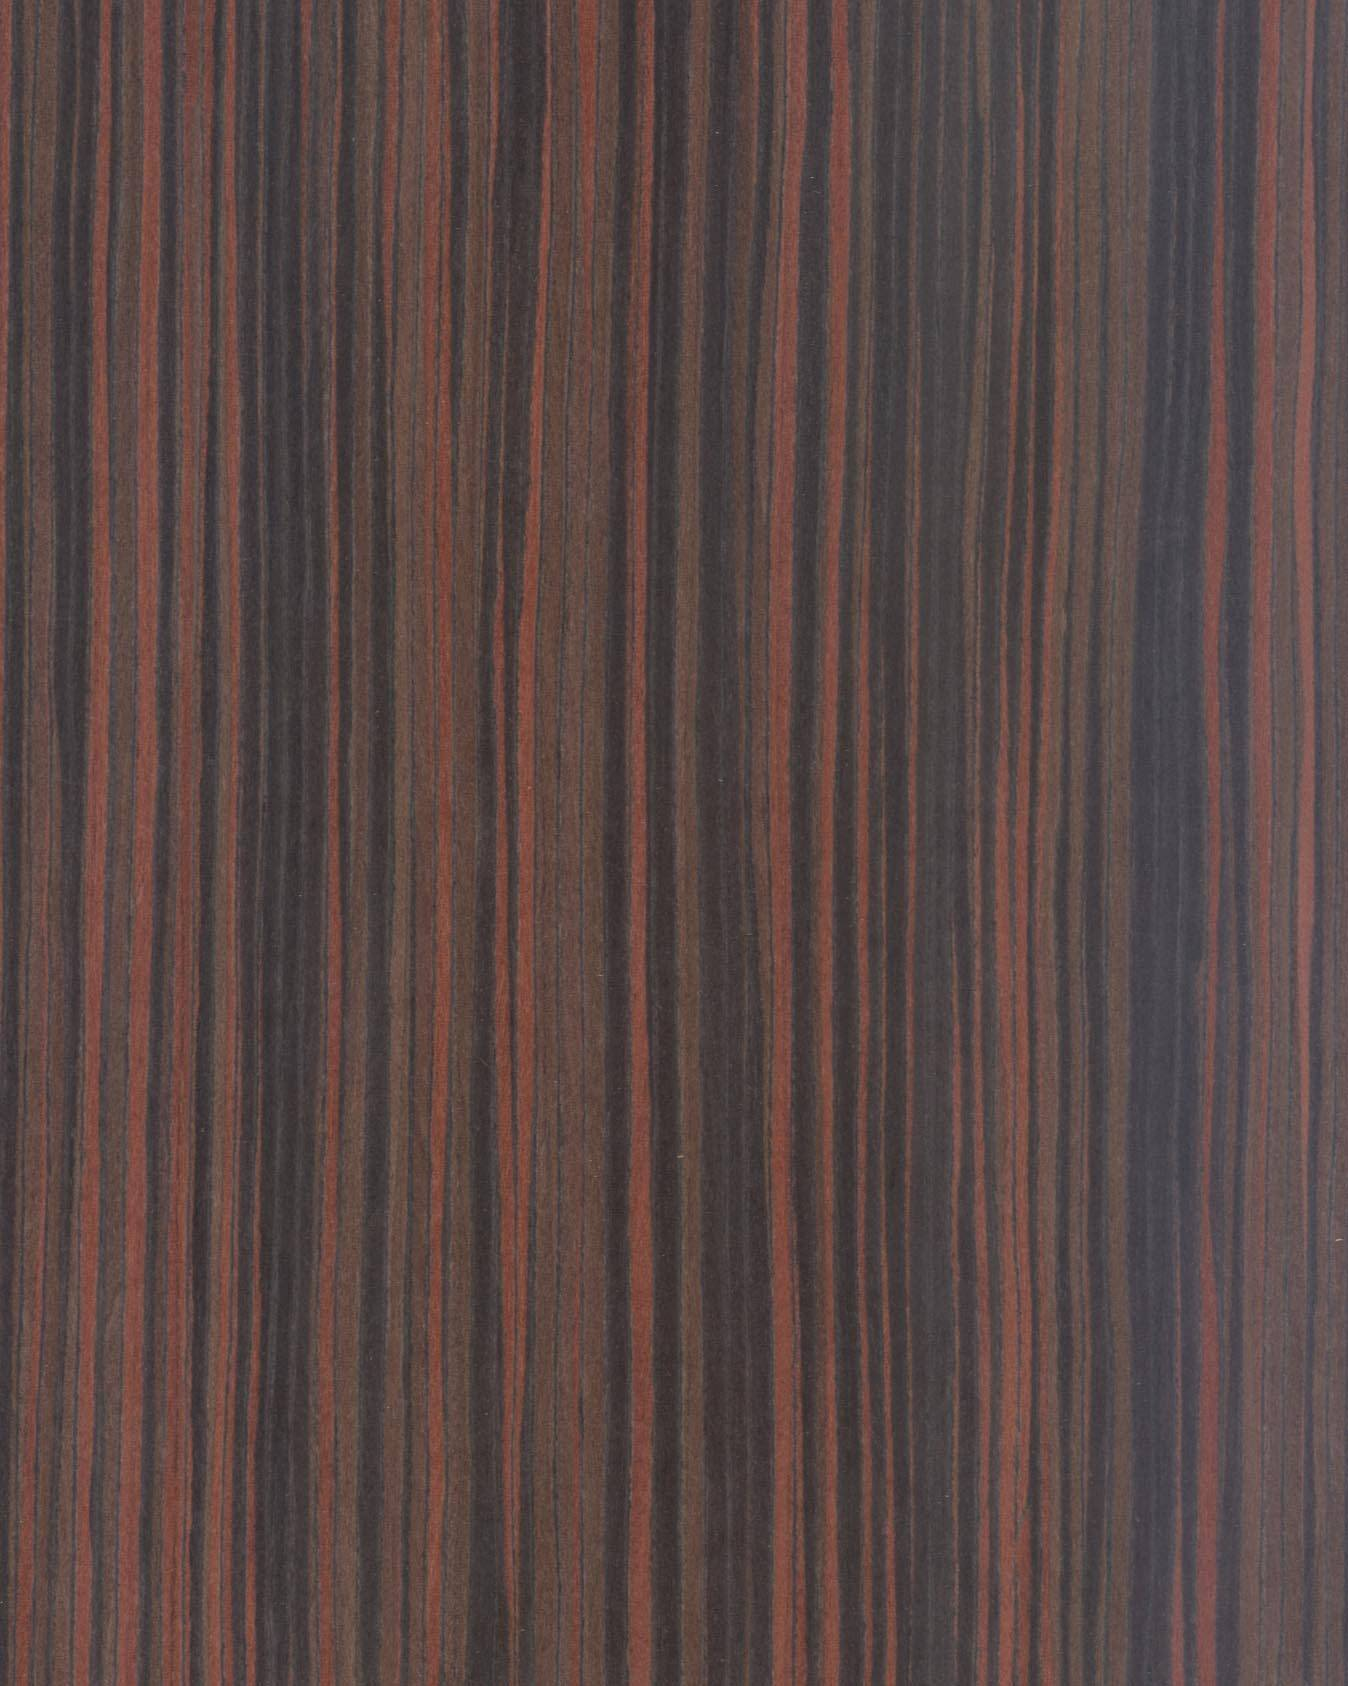 Very Impressive portraiture of Engineered Wood veneer  ebony121 Shandong Kaiyuan Wood Industry Co  with #674C46 color and 1348x1686 pixels